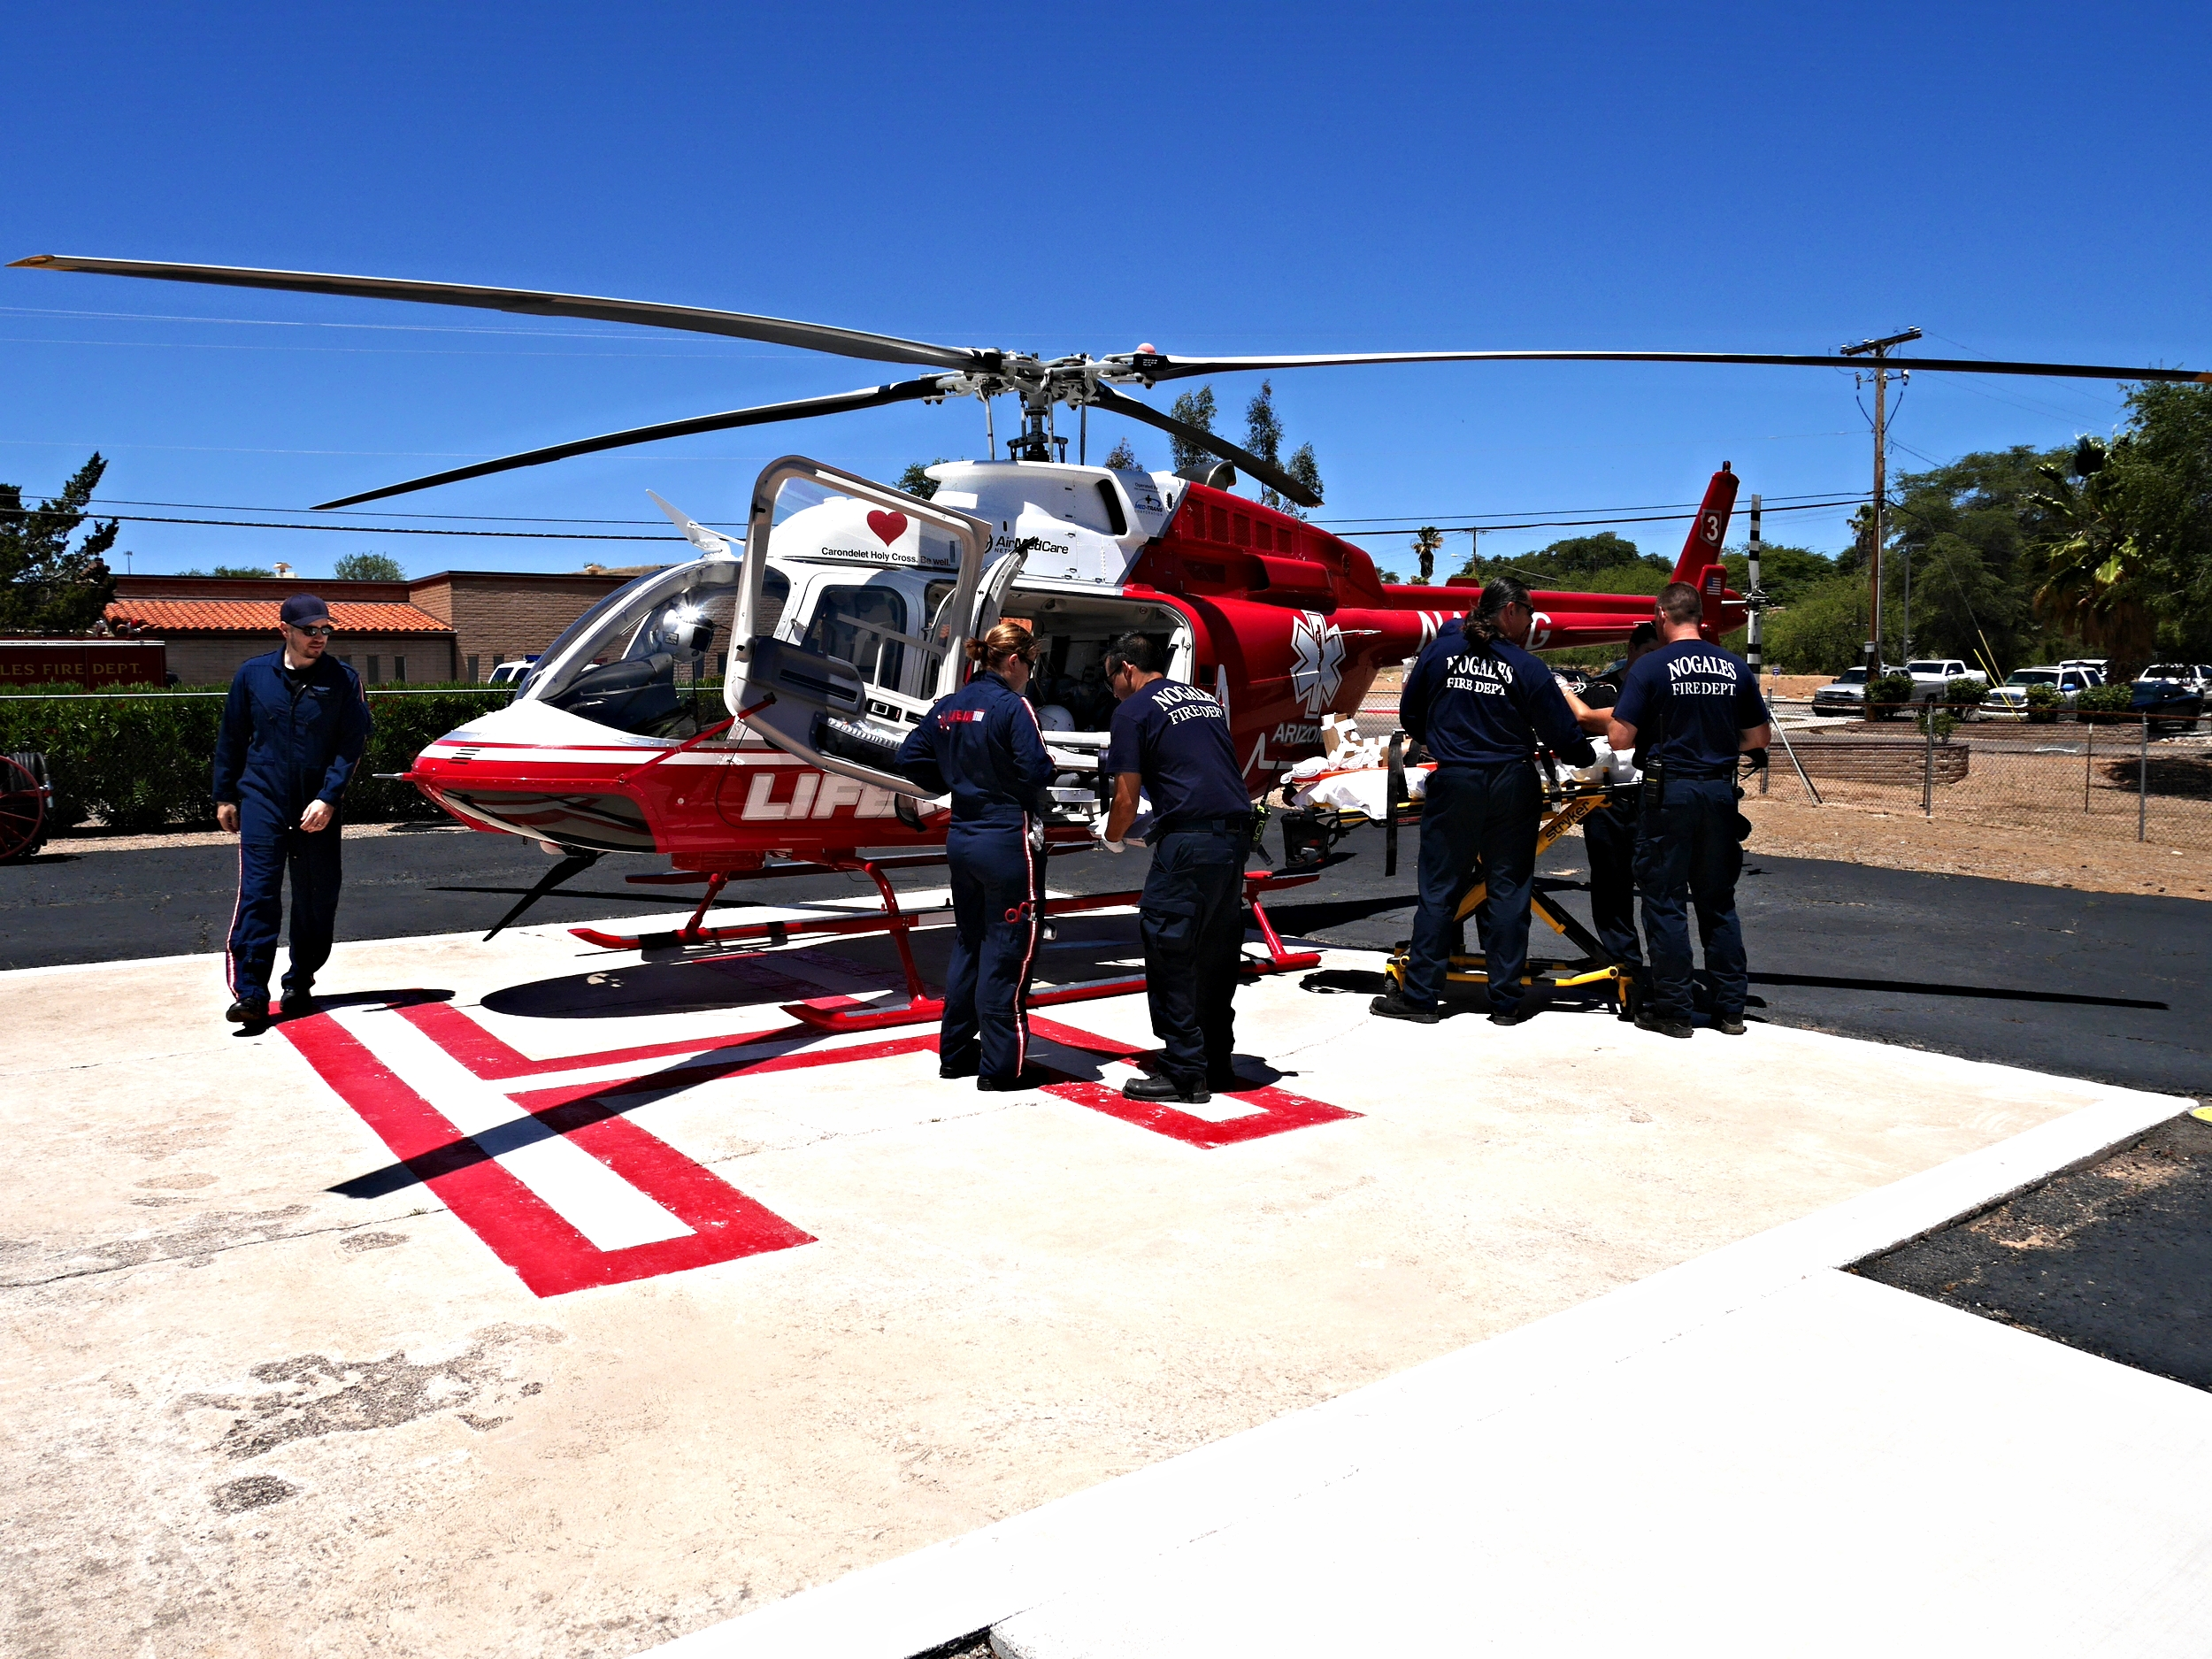 Patient being transferred onto LifeLine helicopter at the landing pad near Nogales Holy Cross Hospital. May 2015. Photo by Ieva.